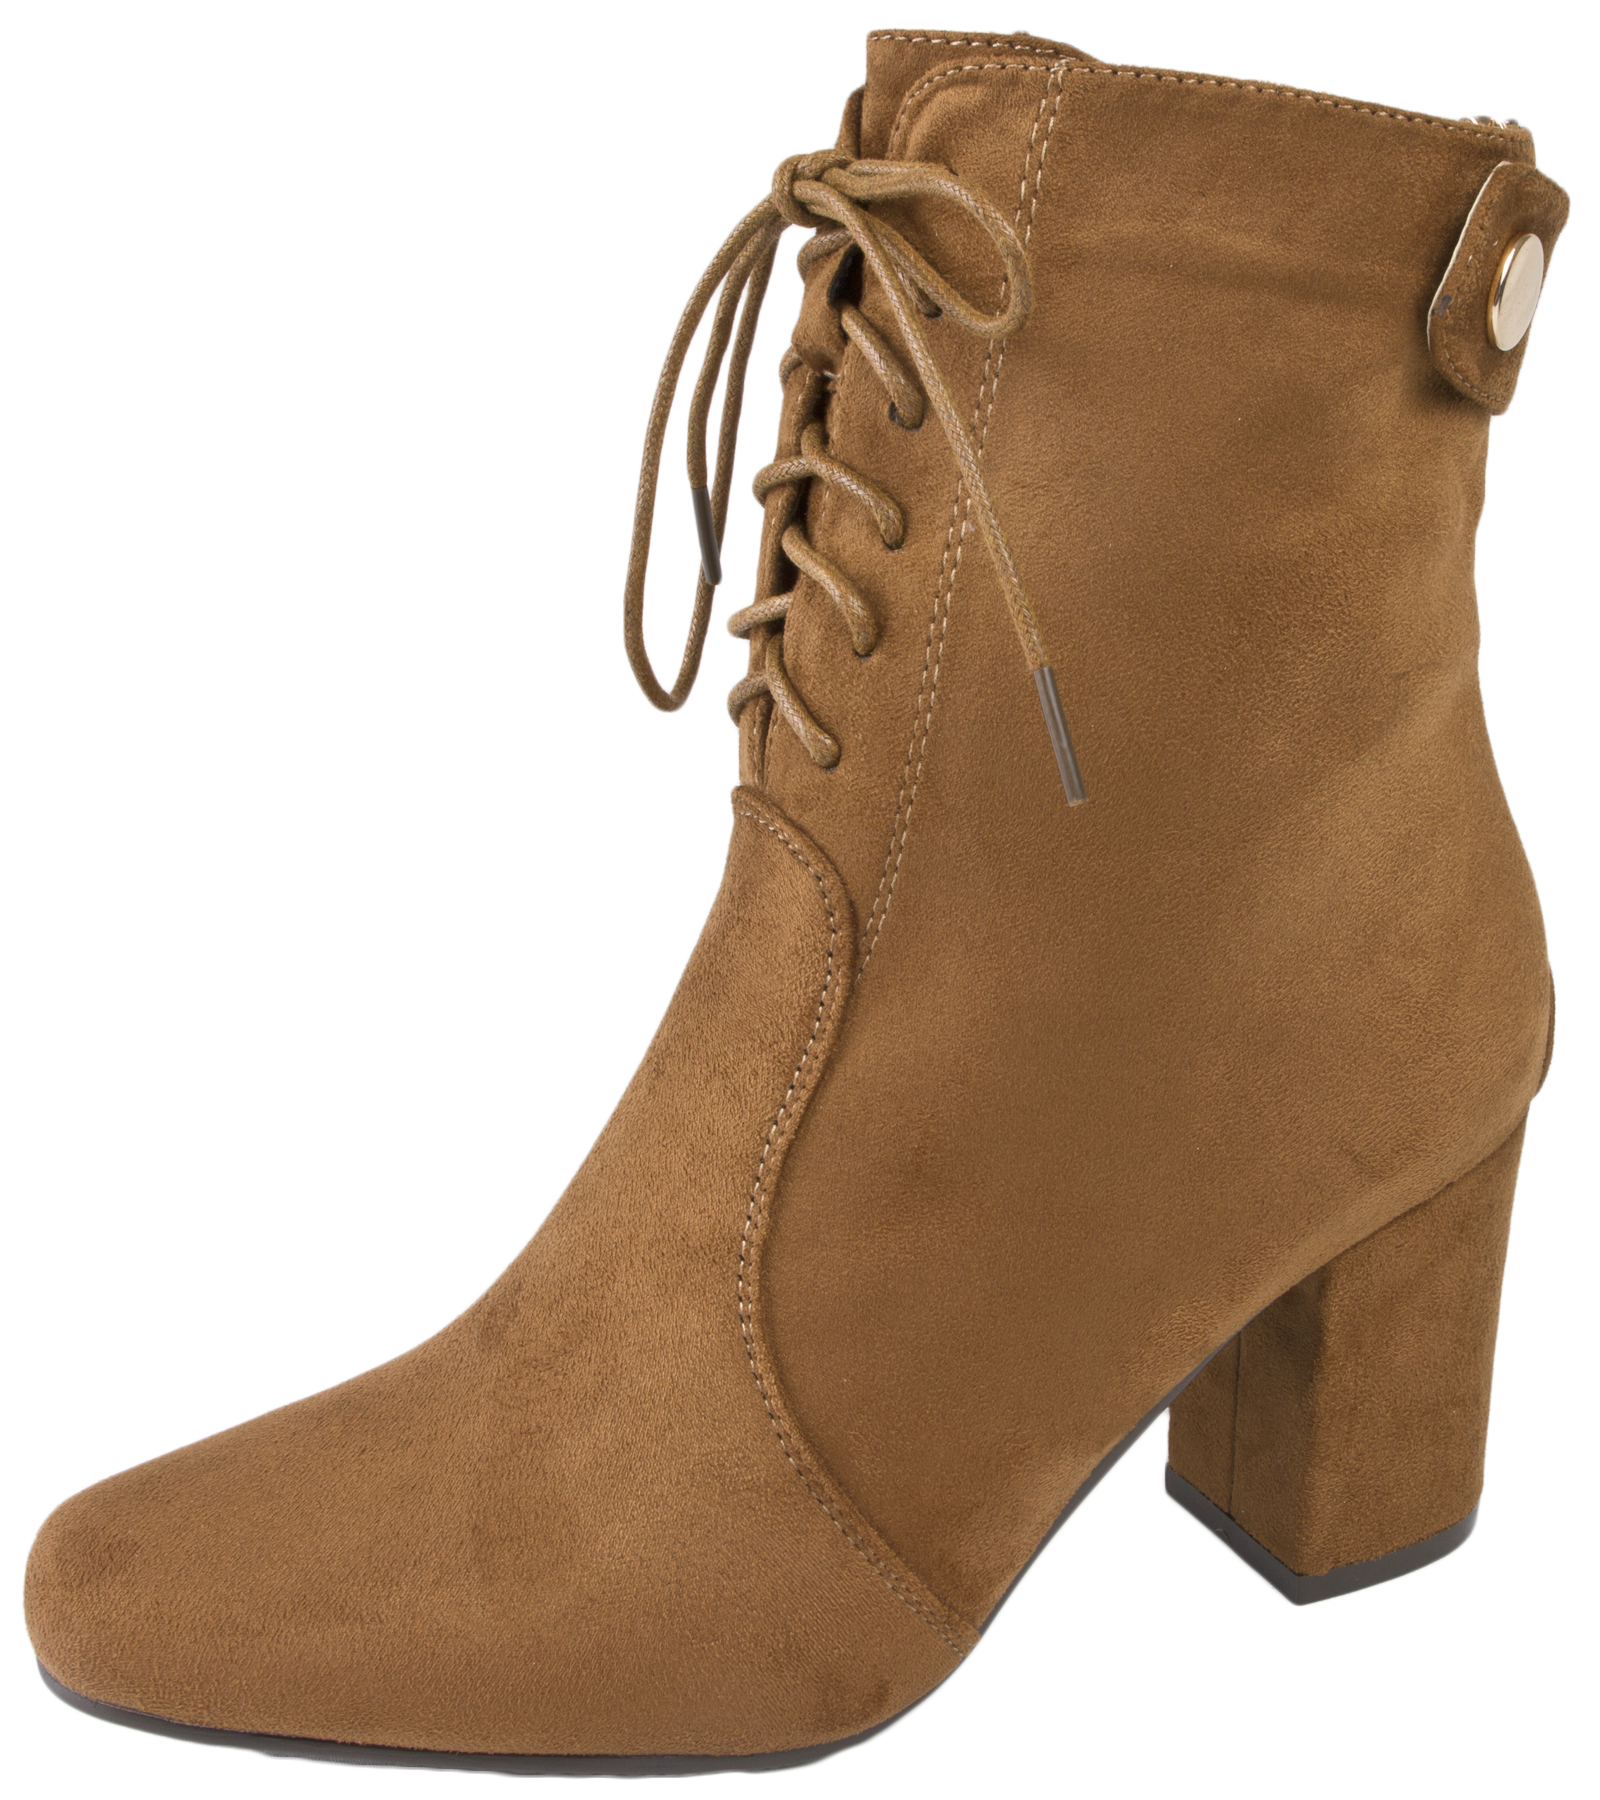 Elegant WOMENS LACE UP ANKLE BOOTS HIGH BLOCK PLATFORM HEEL SUEDE SHOES LADIES NEW 3-8 | EBay